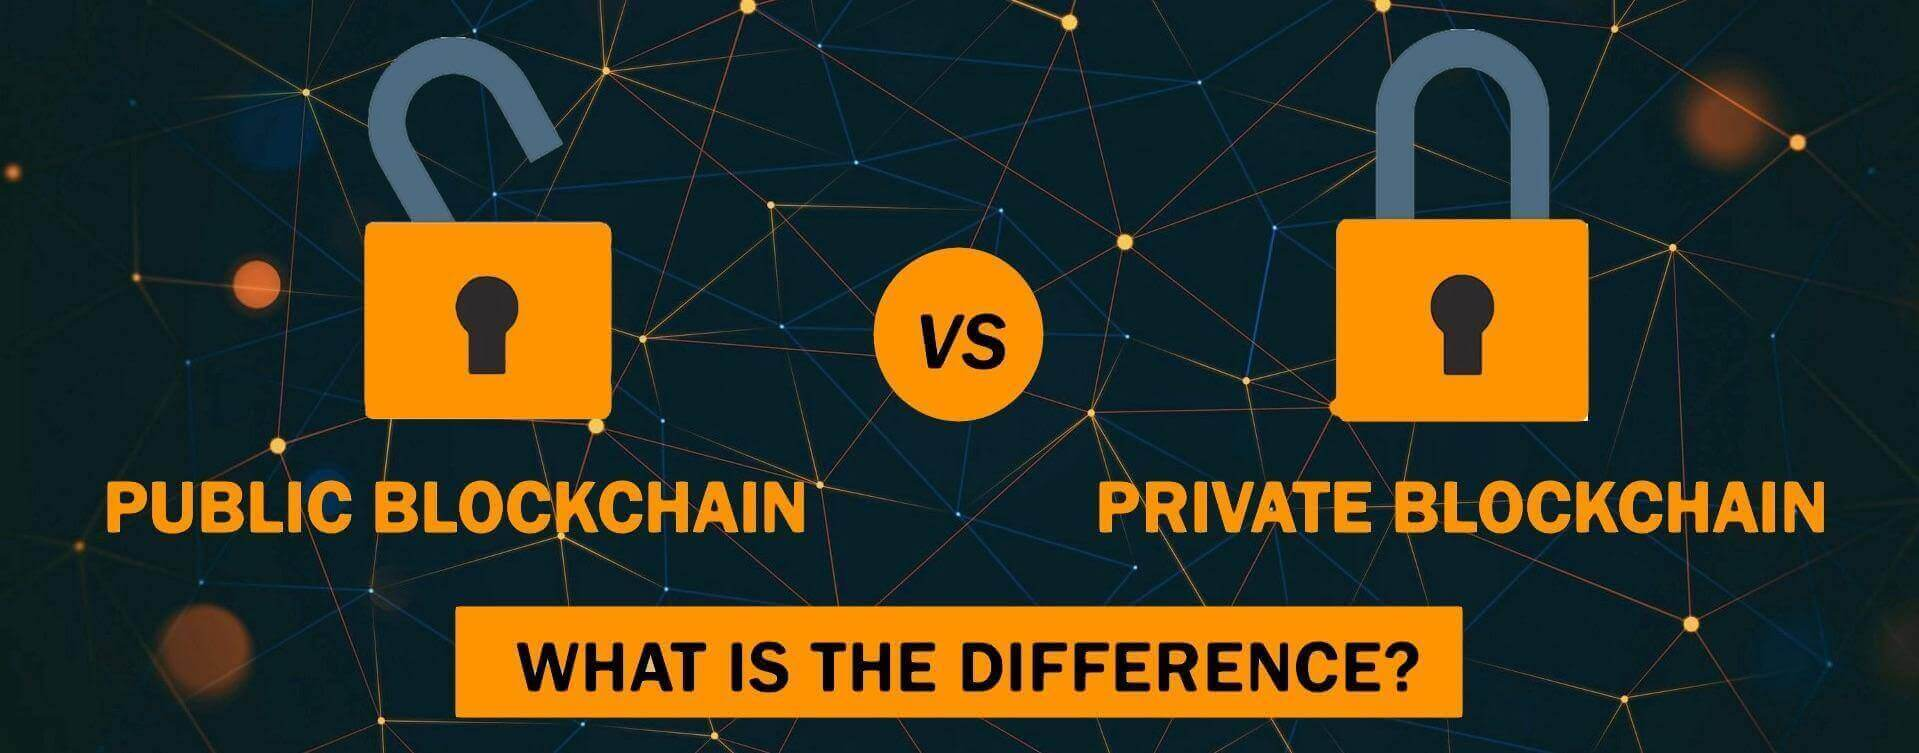 Public Vs Private Blockchain, Private Blockchain, Public Blockchain, Difference between Private & Public Blockchain, Private & Public Blockchain